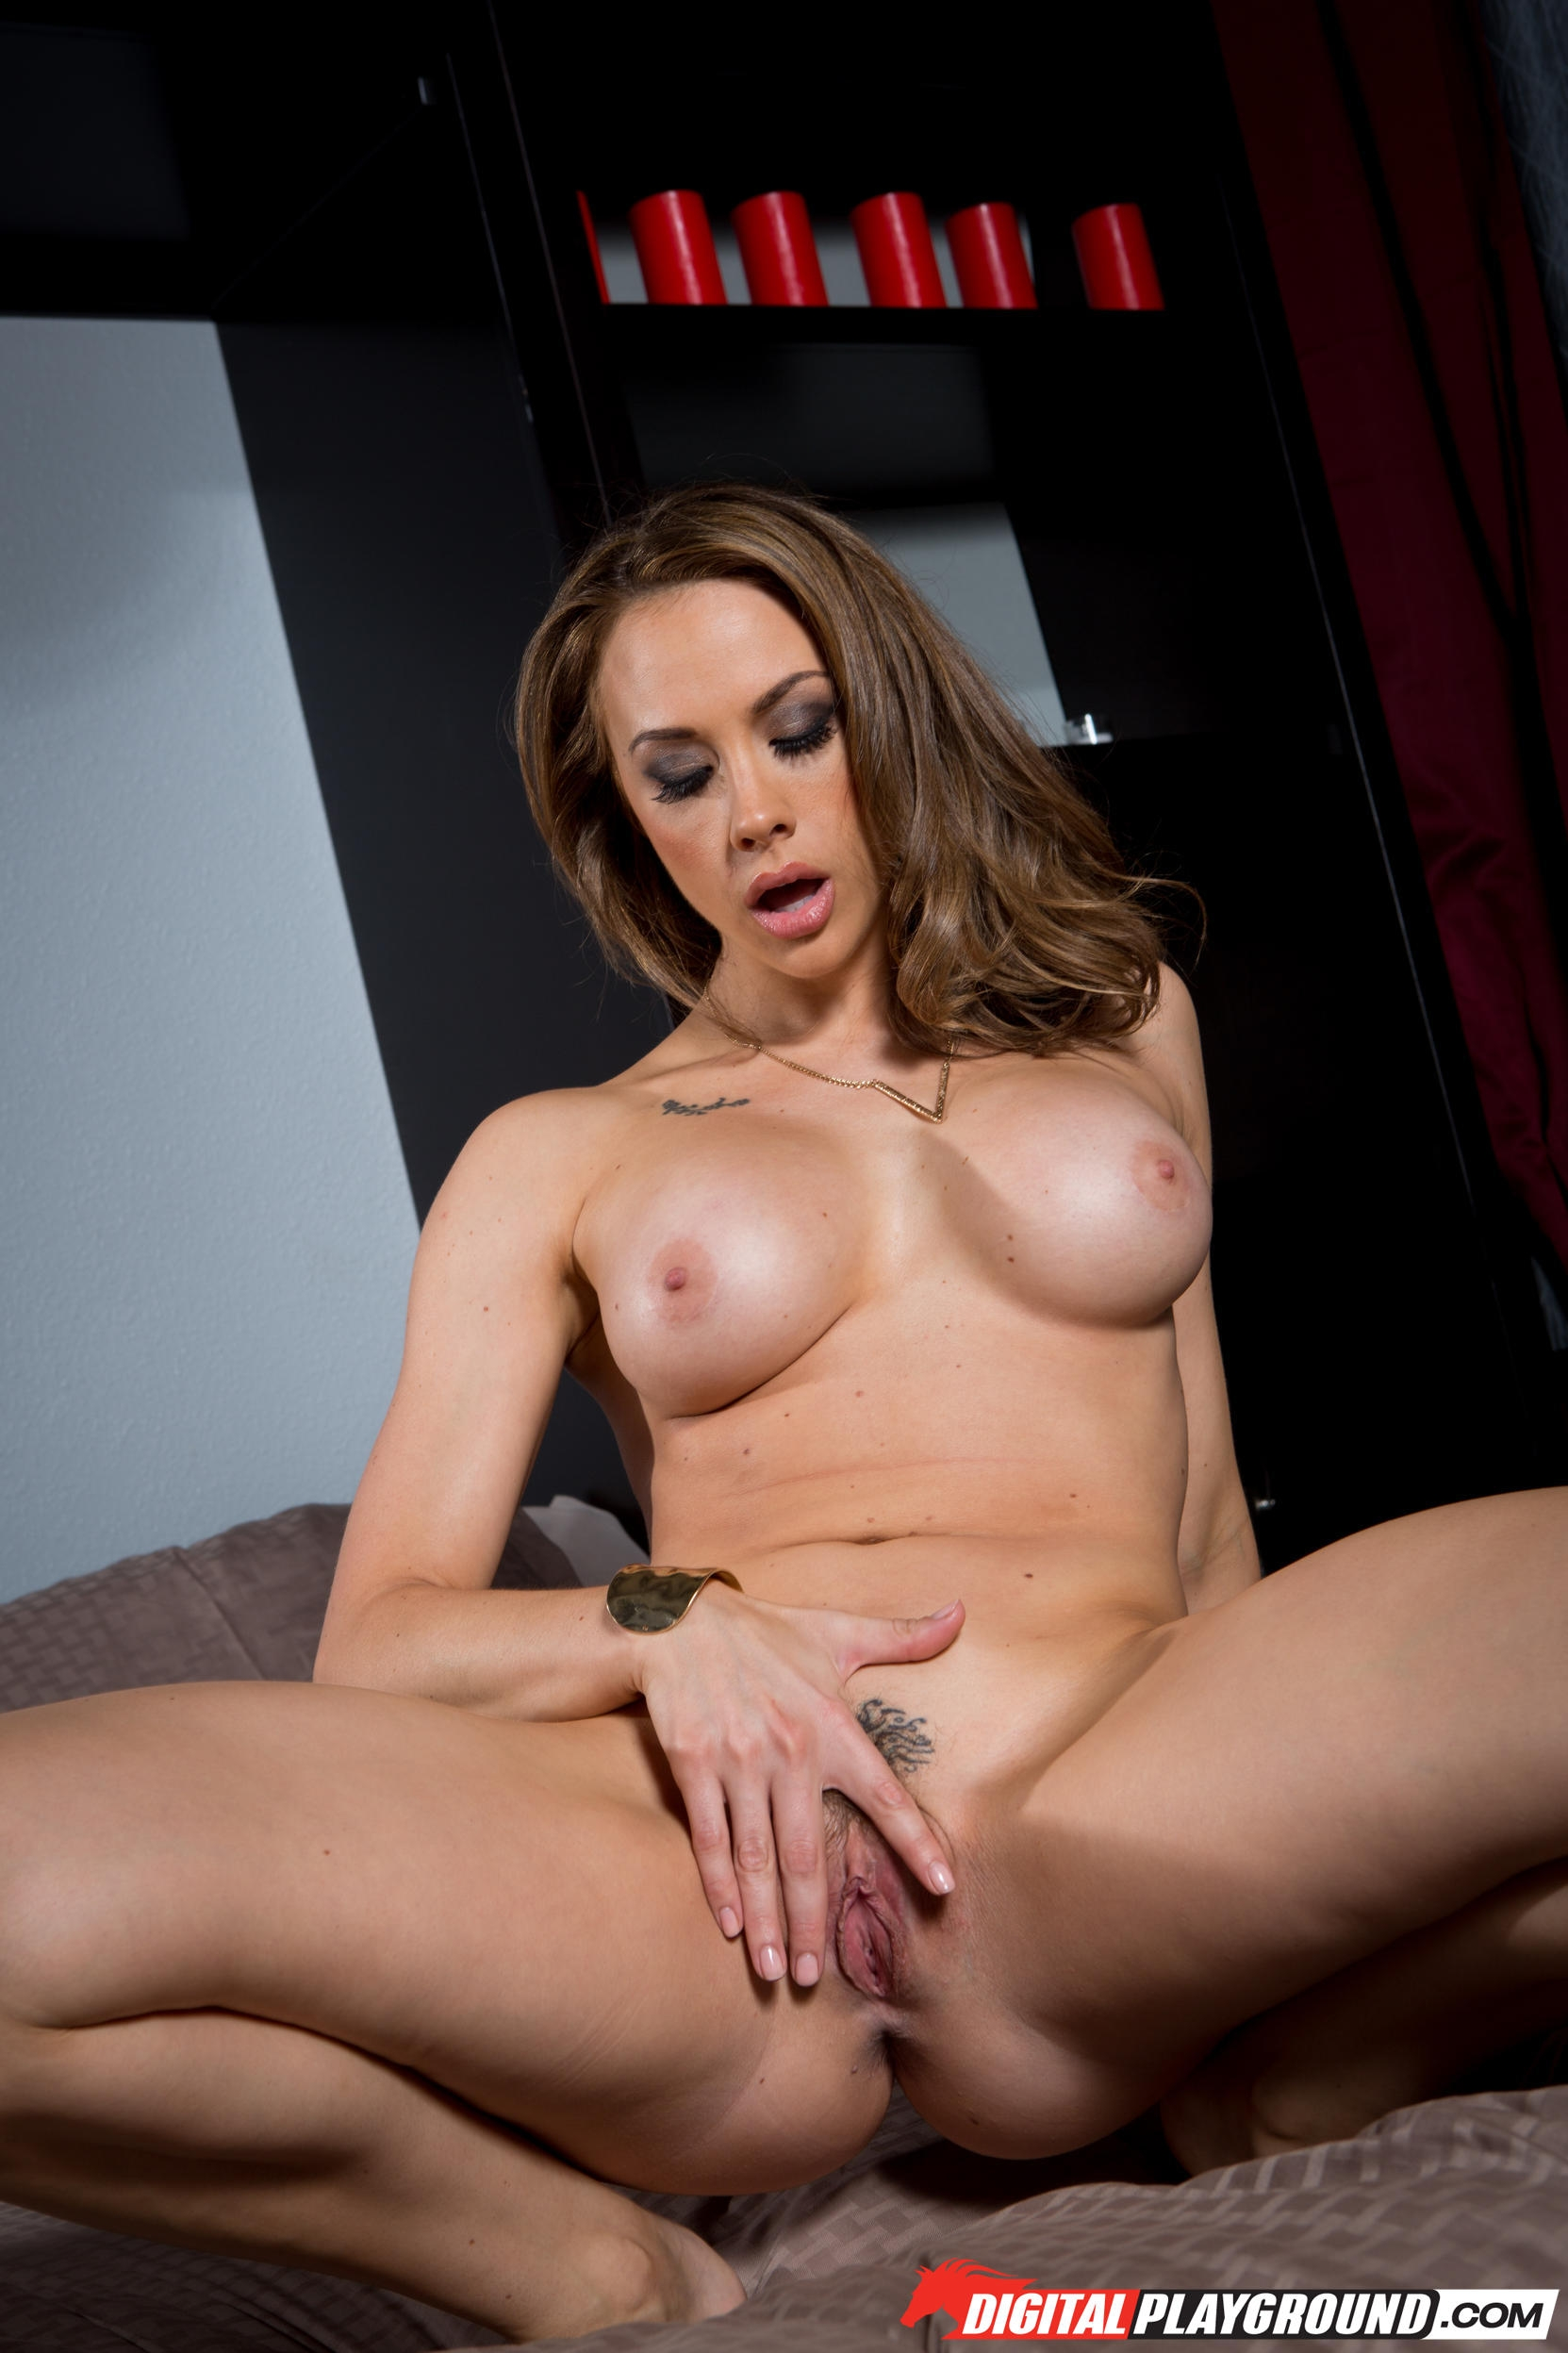 Naughty milf chanel preston puts on a huge strapon and plays a kinky solo